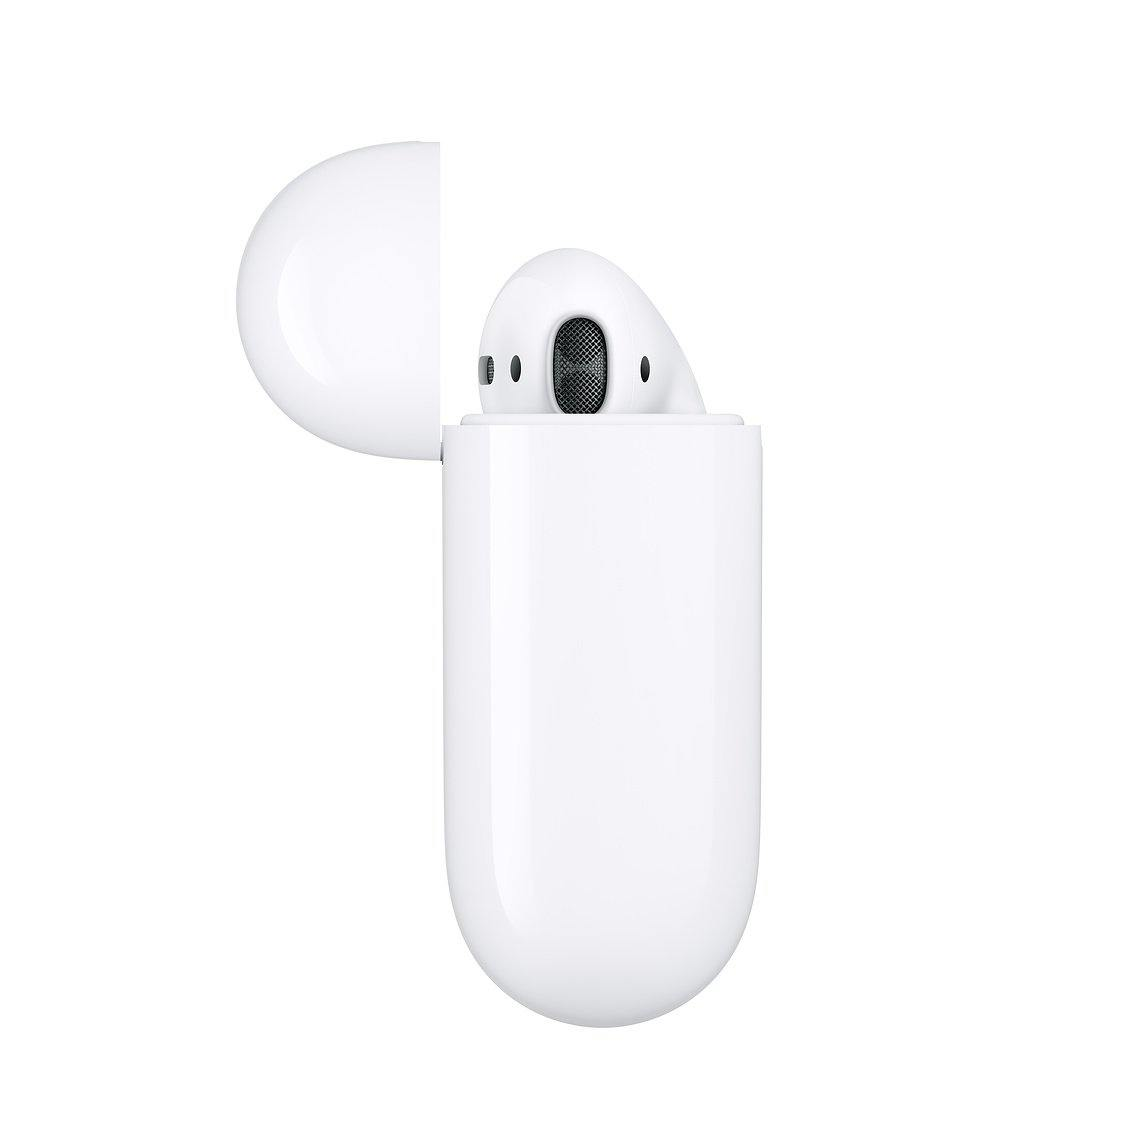 Apple AirPods 2 with Wireless Charging Case White MRXJ2ZM/A